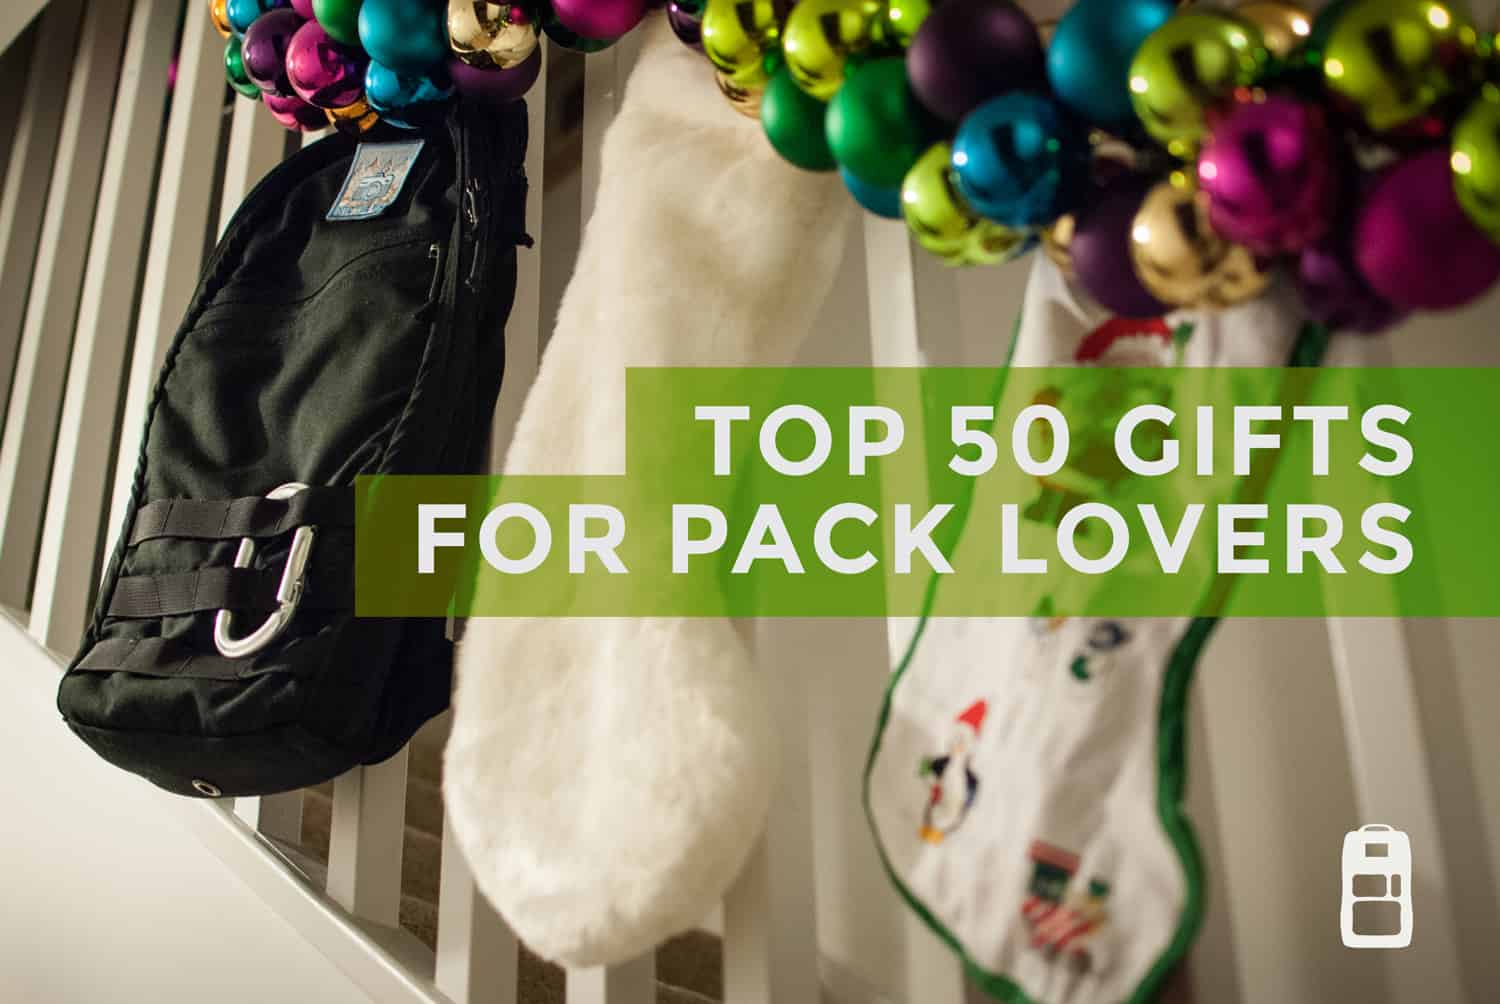 Top 50 Gifts for Pack Lovers – Updated Top50Main_op